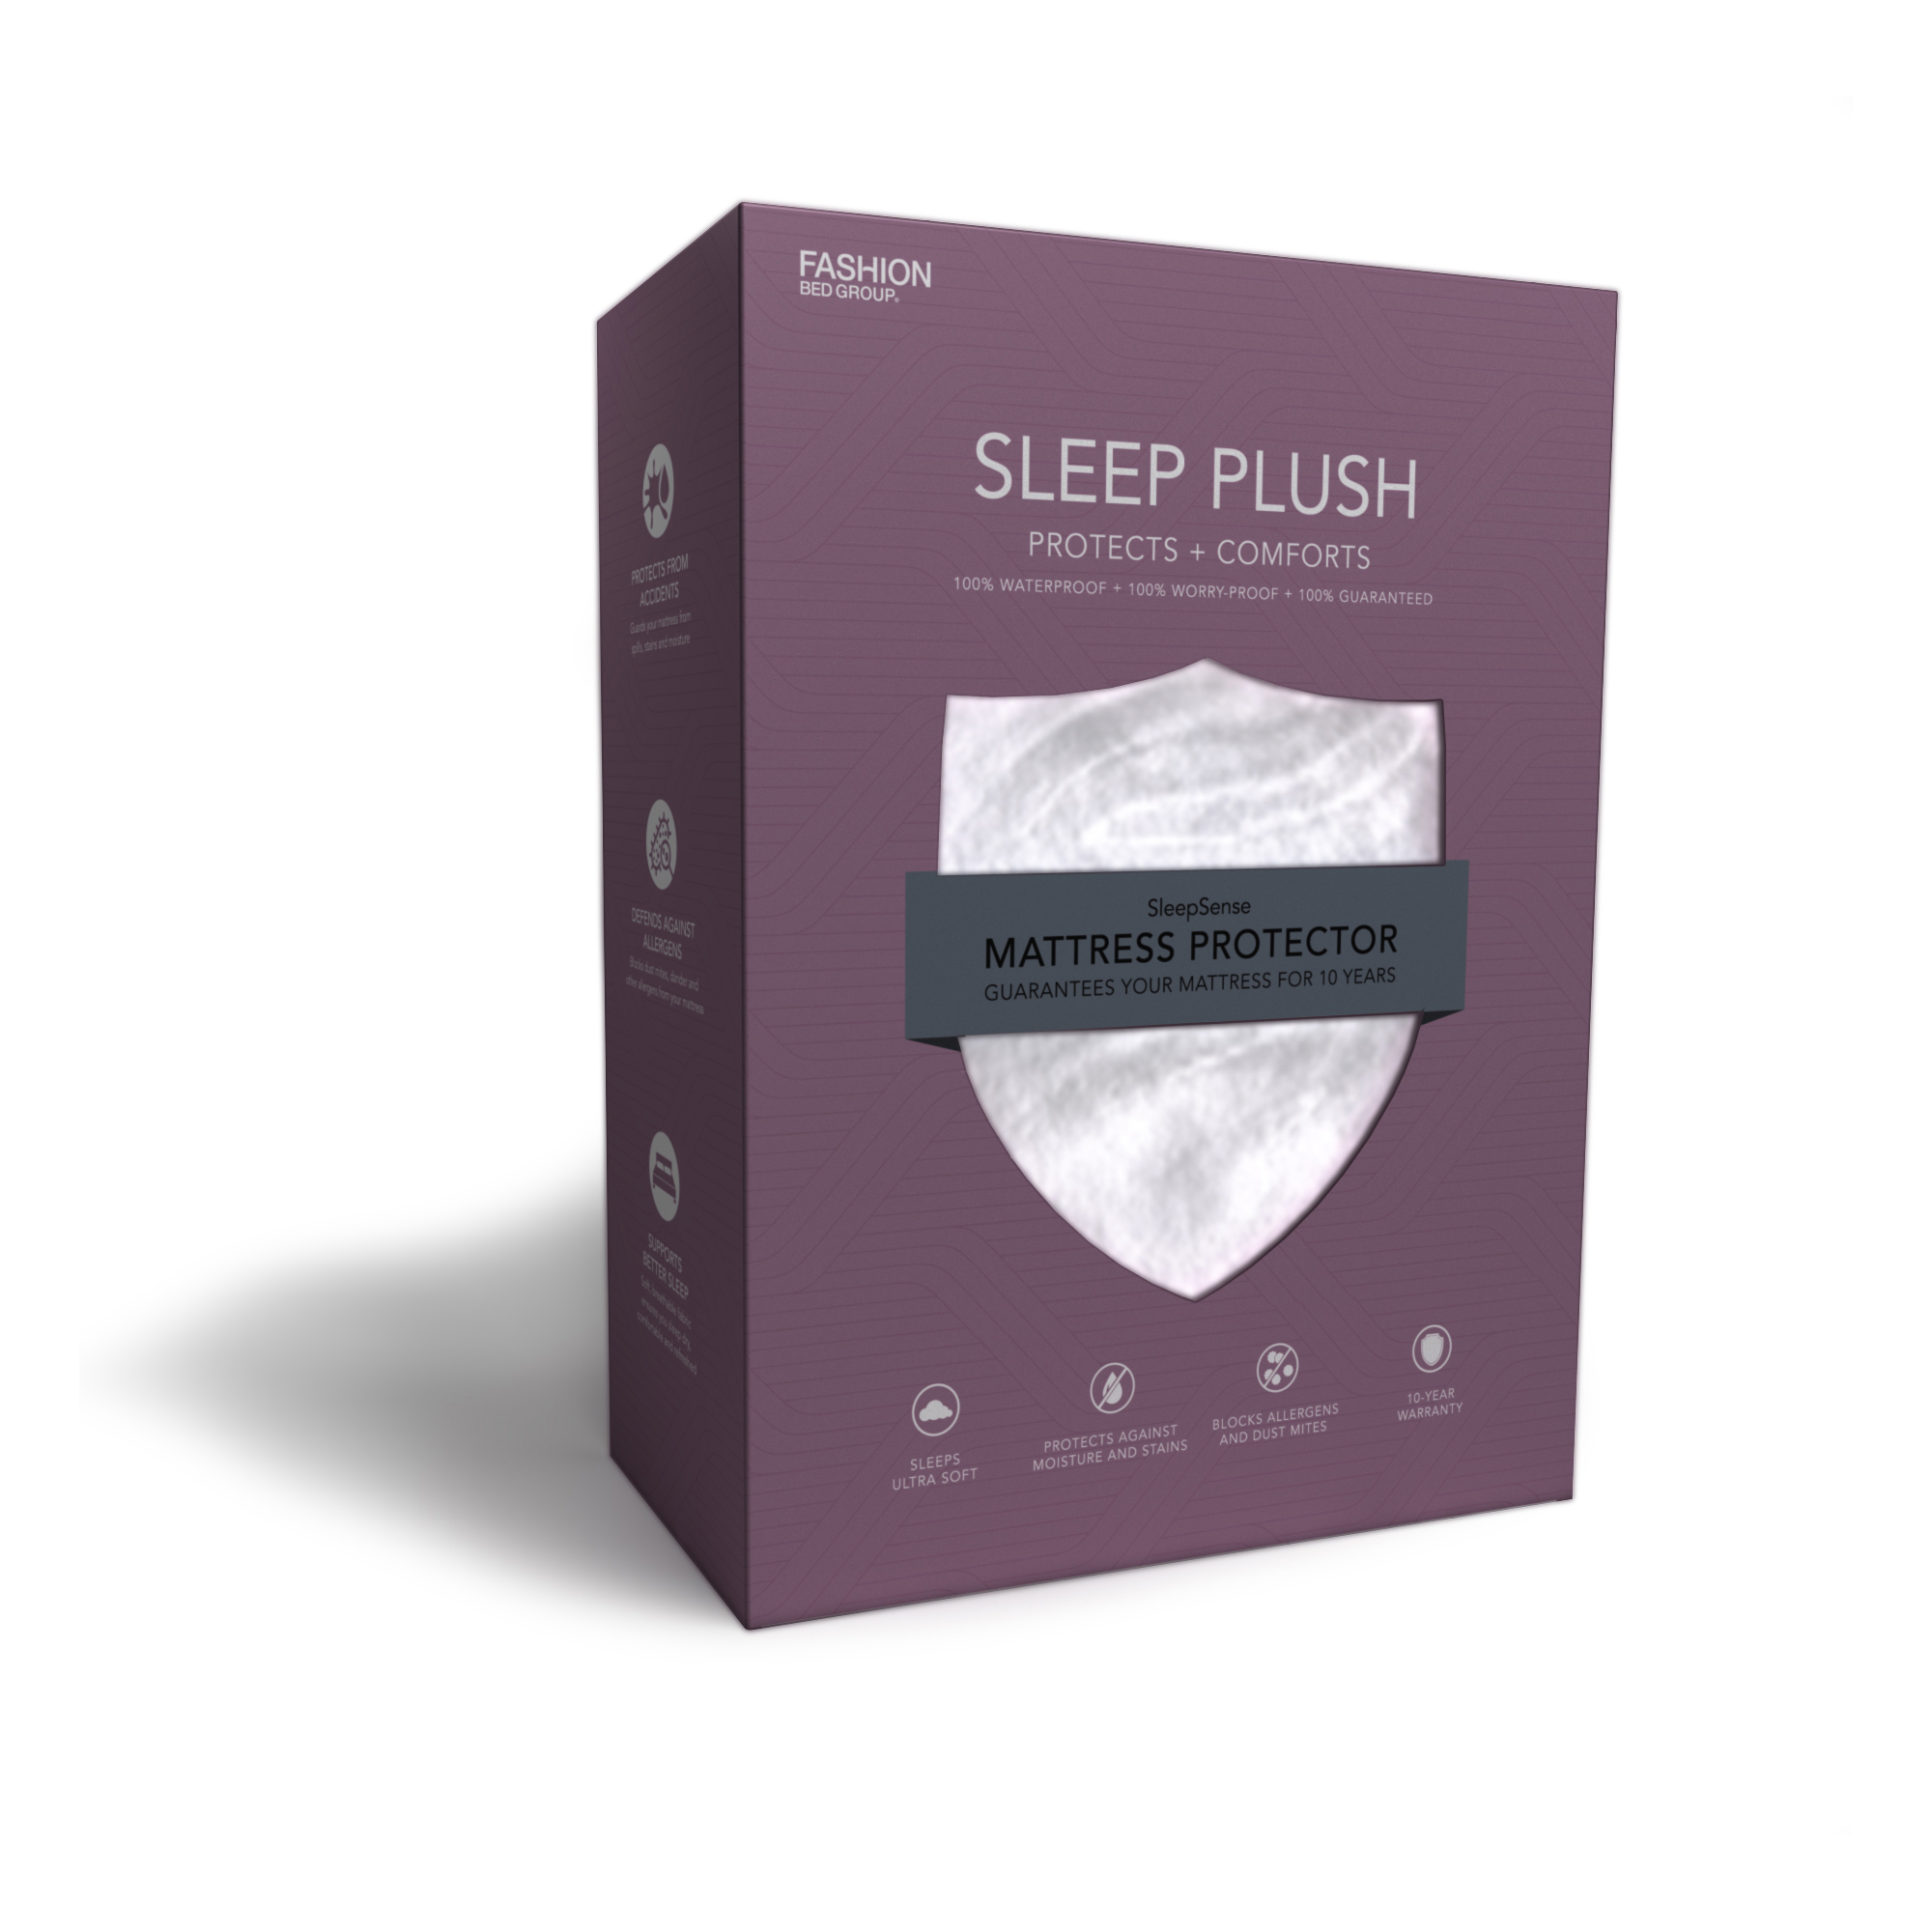 Sleep Plush Mattress Protector Bed SHeet with Ultra-Soft and Waterproof Fabric, Twin by Fashion Bed Group